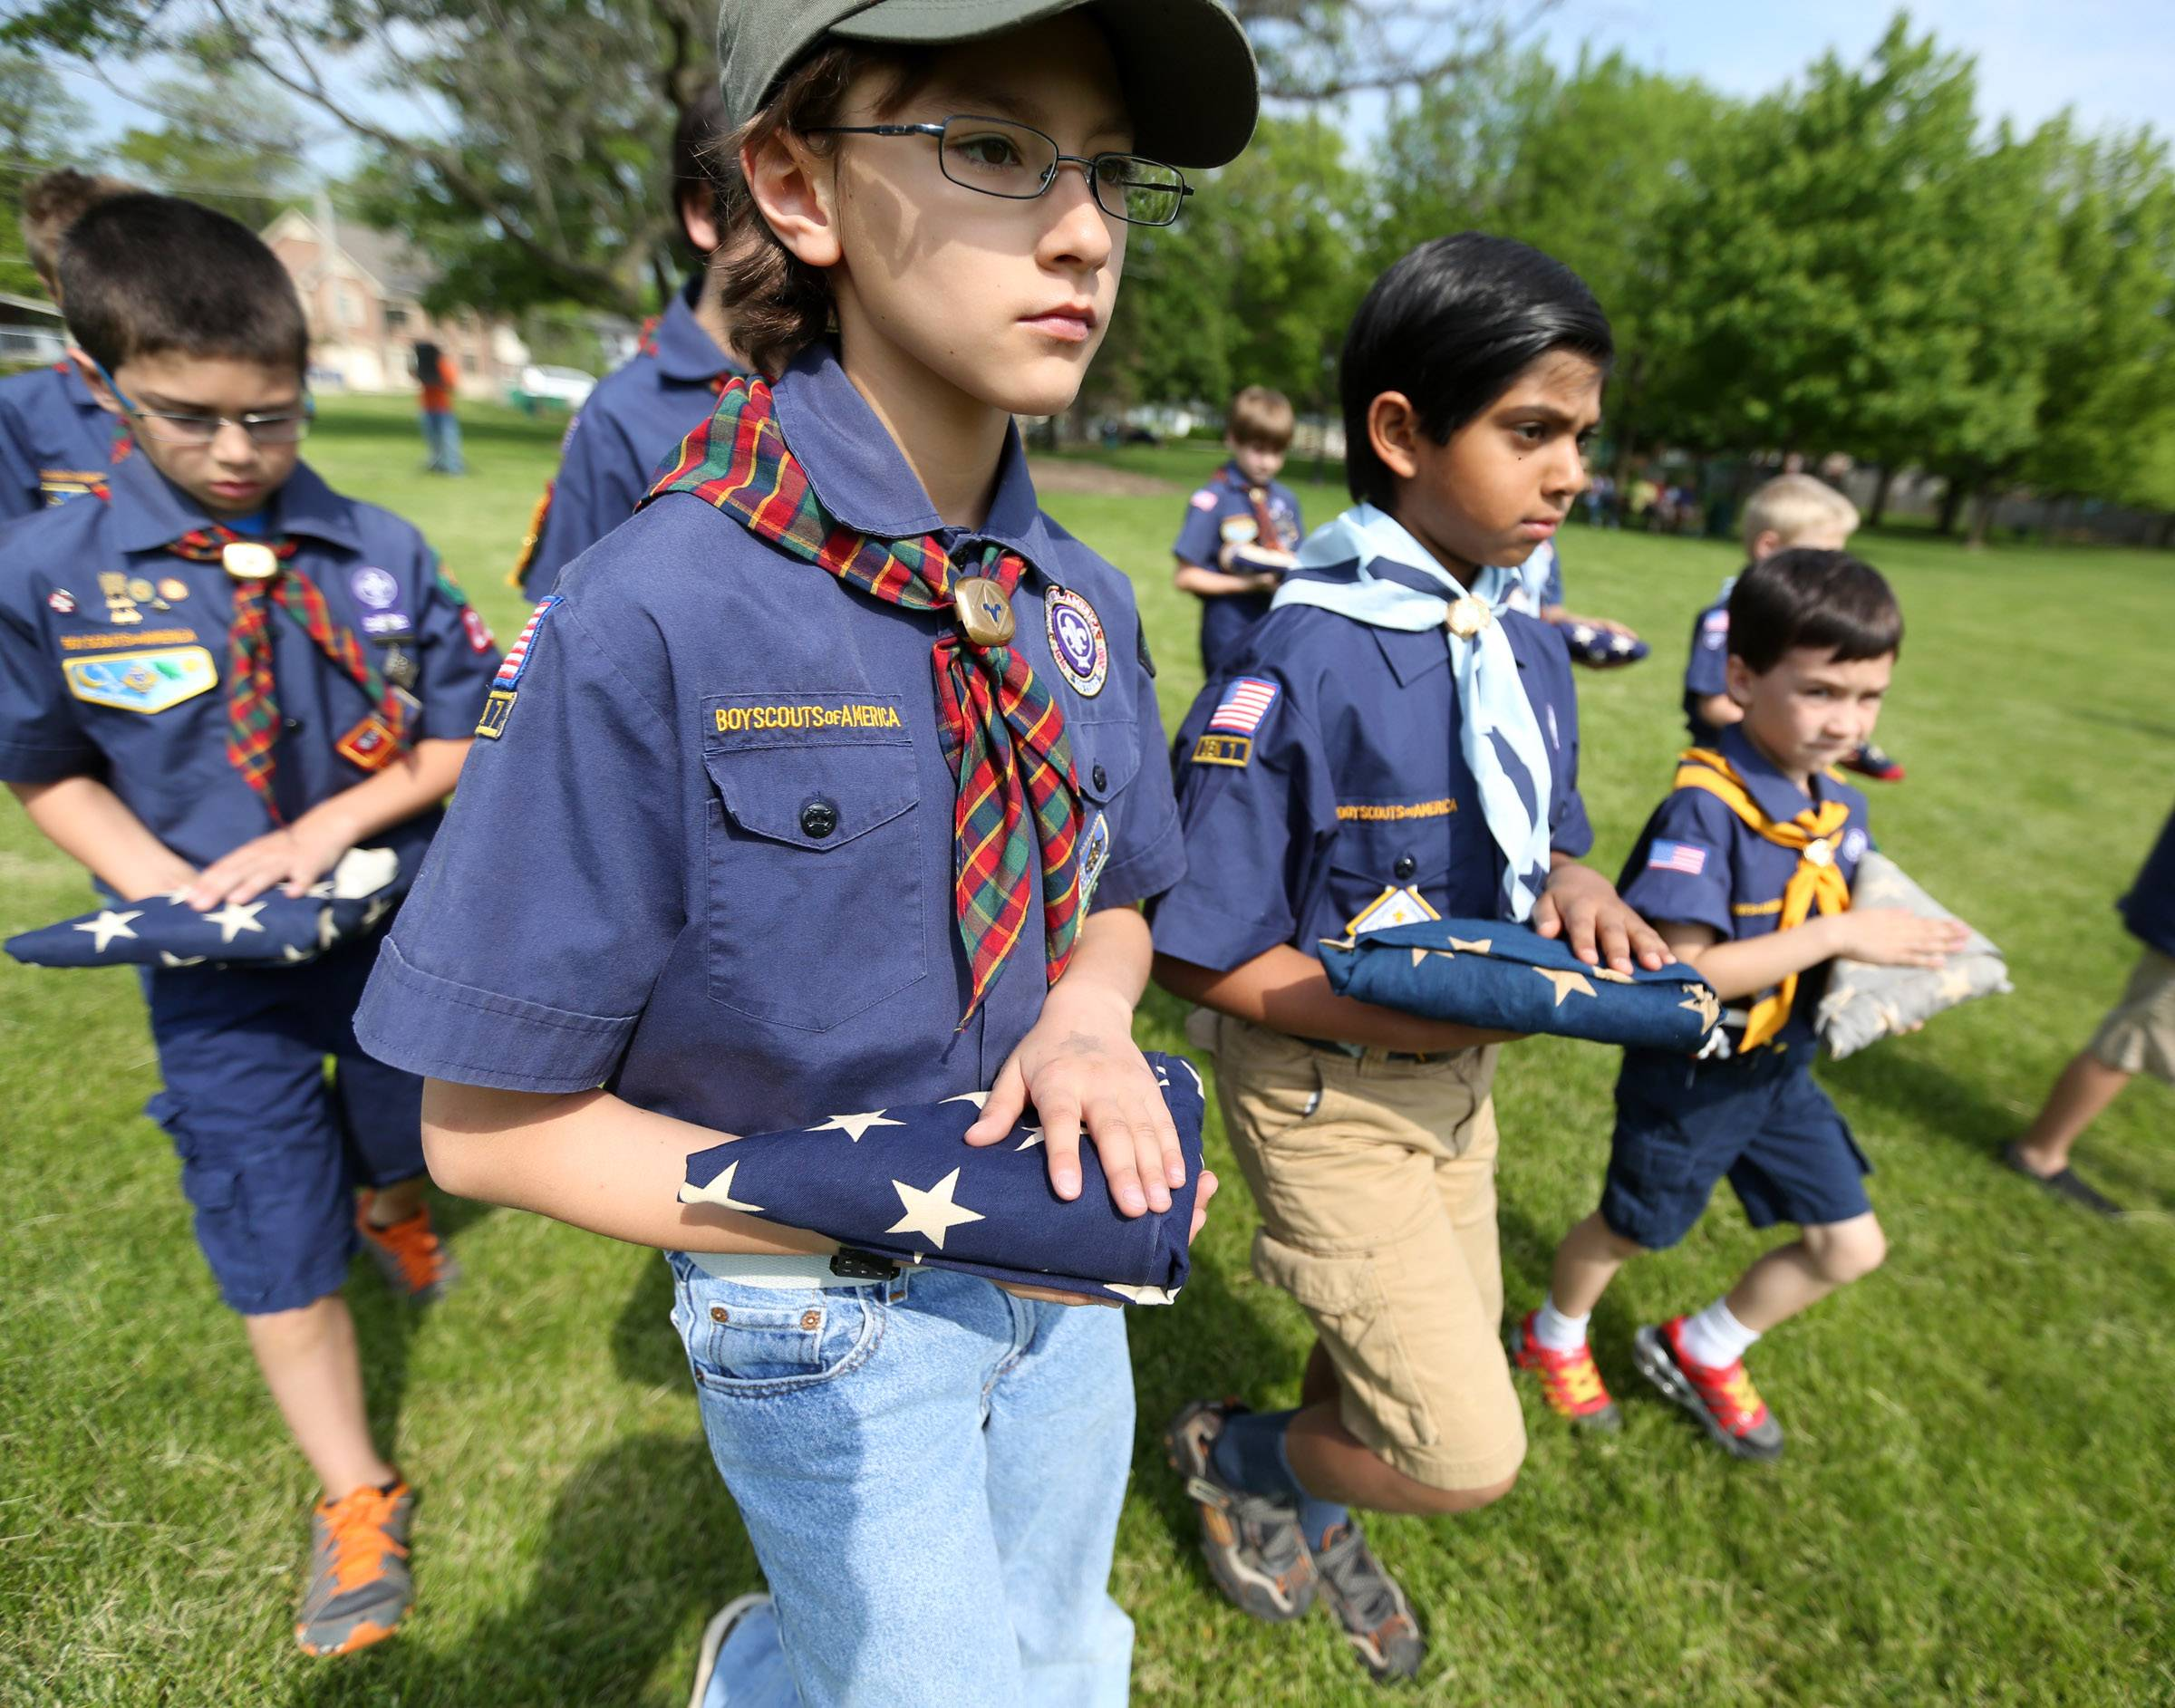 Boy Scouts Ryan Conwell, center, and Rahil Patel with Pack 12 march with folded American flags at flag retirement ceremony held by Bartlett VFW Post 11018 and American Legion Post 1212 at Bartlett Park on Memorial Day.